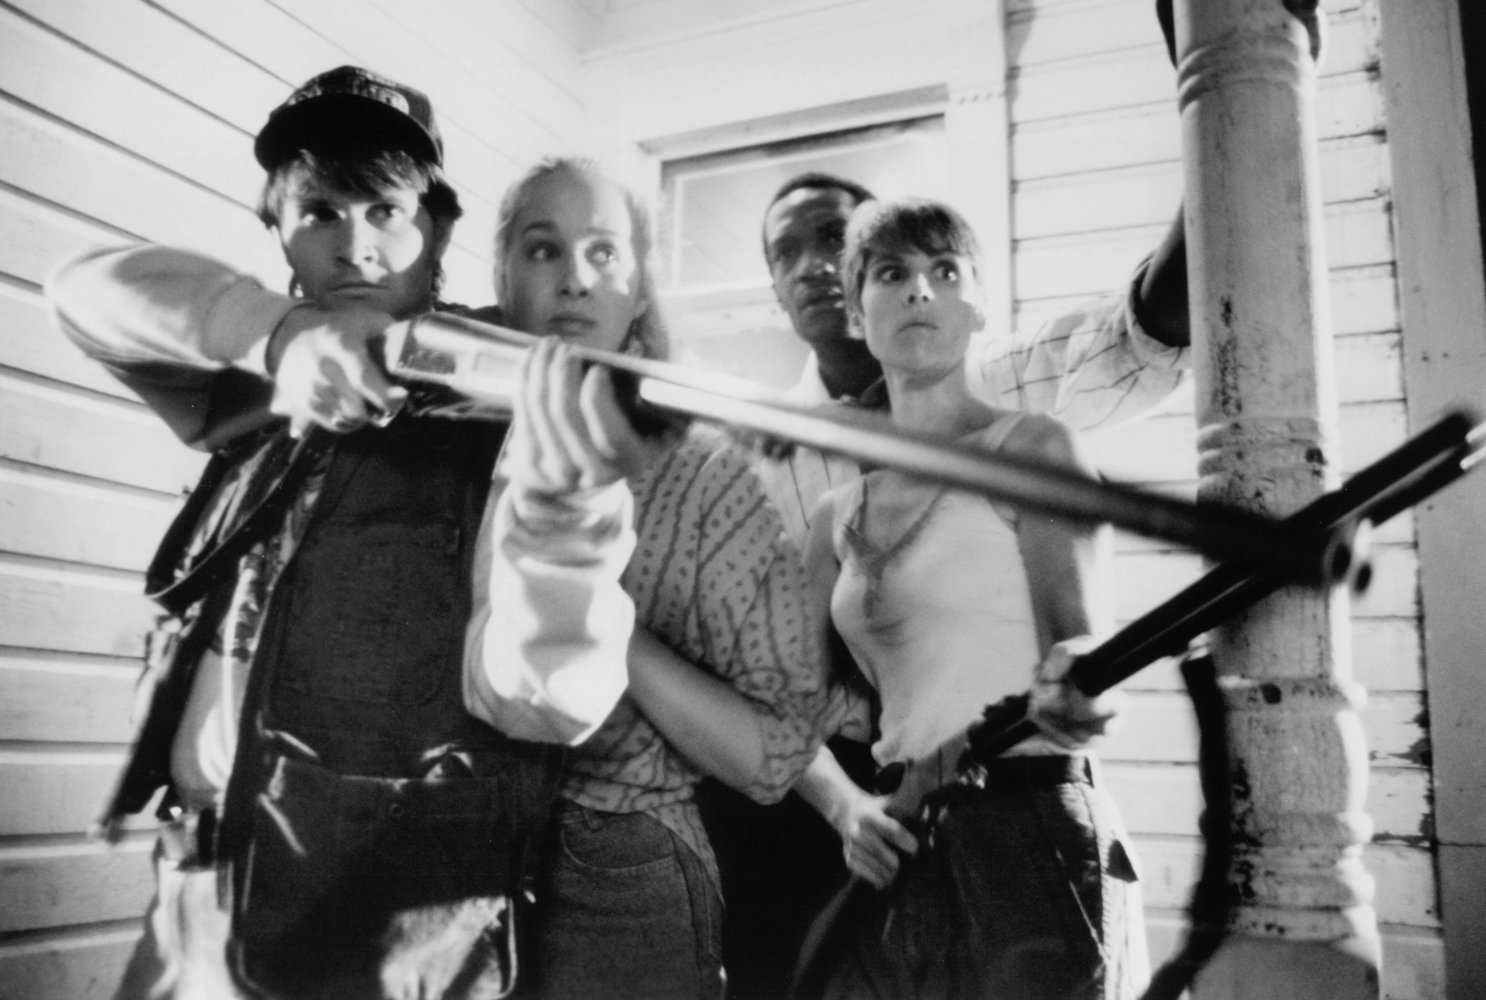 Tony Todd in Night of the Living Dead (1990)